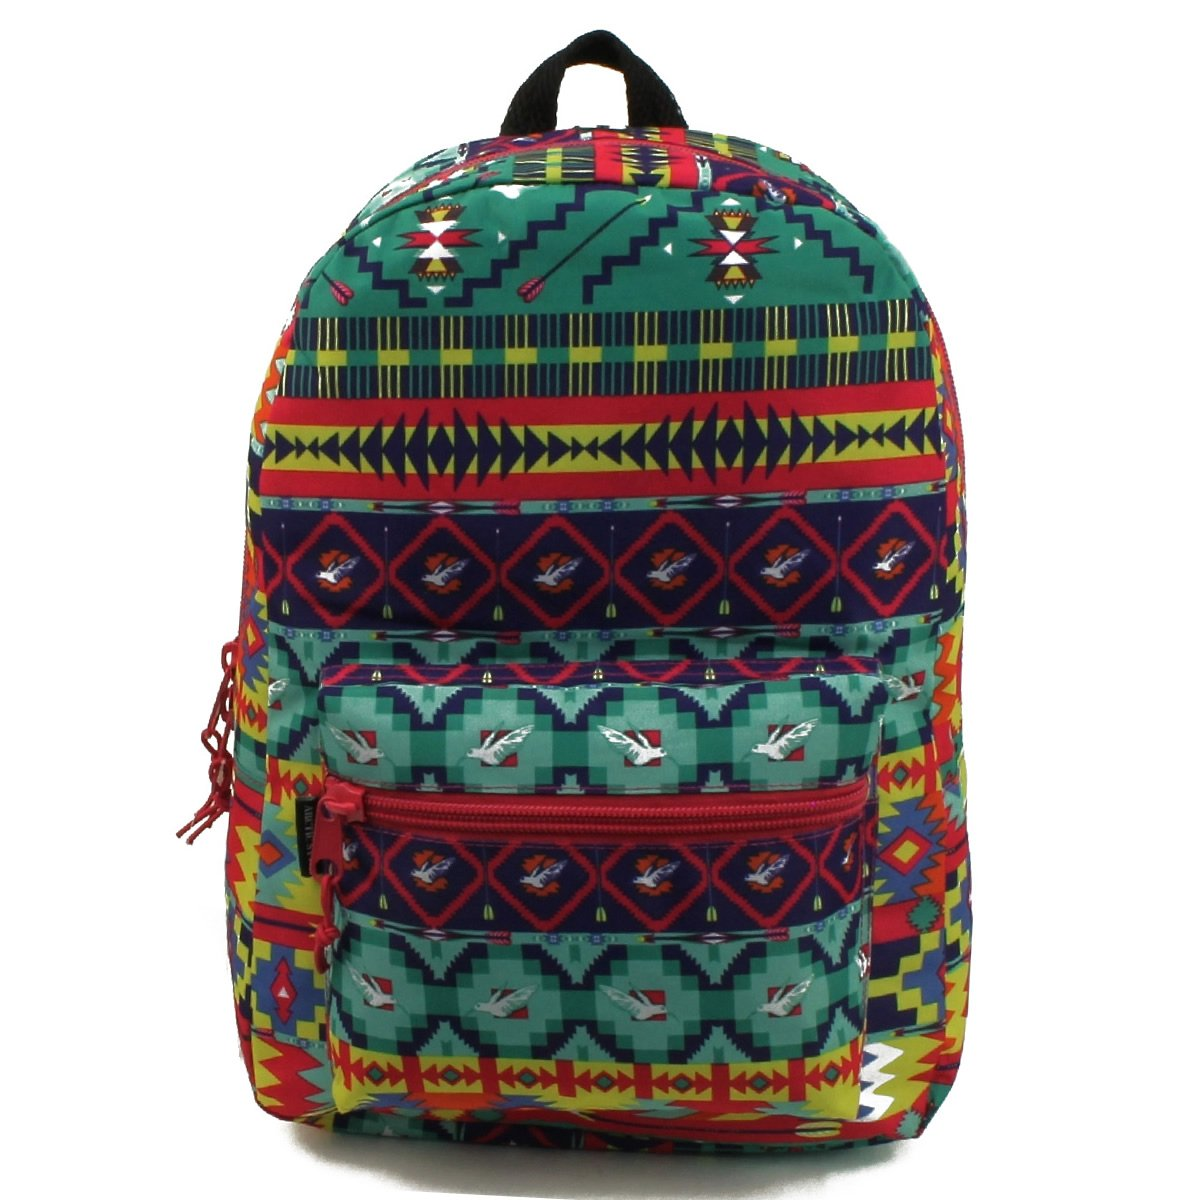 17'' Wholesale Padded Fashion Backpack - Case of 24 by Arctic Star (Image #3)